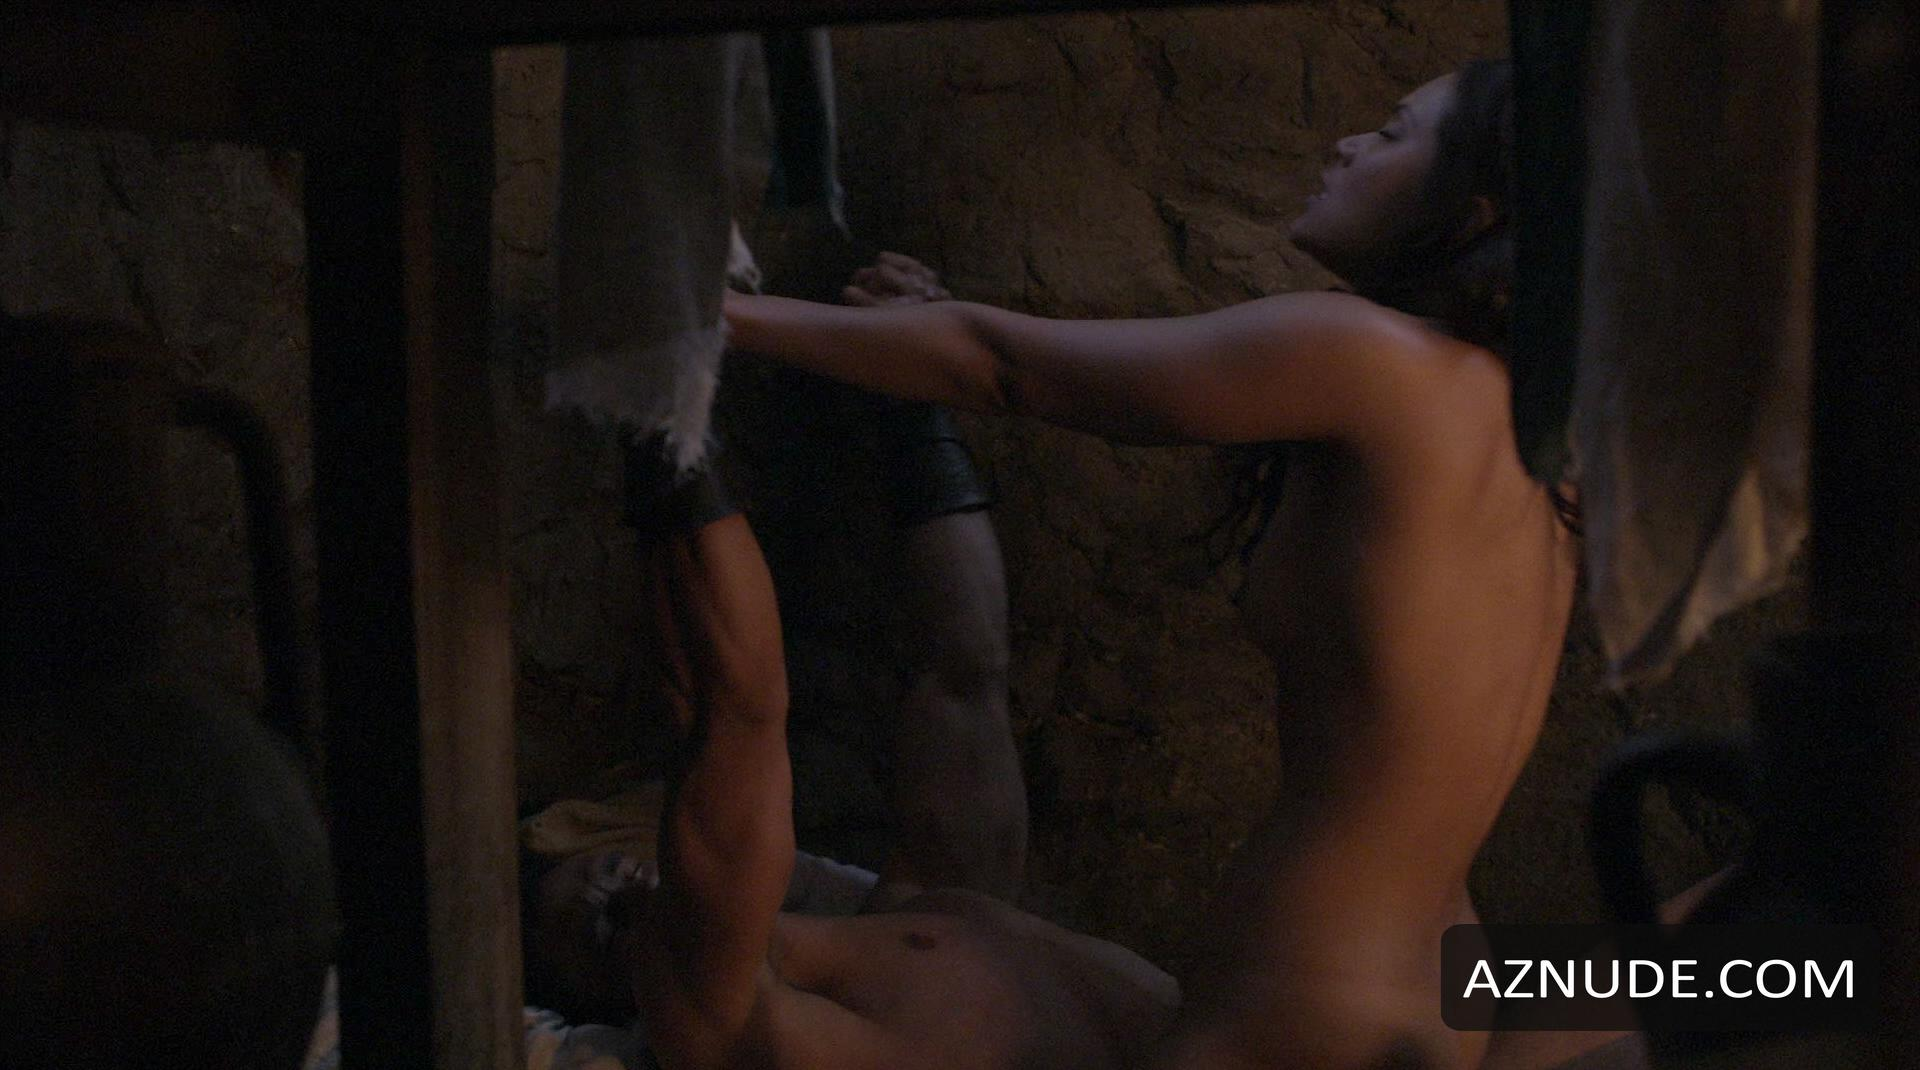 Boobs Lesley Ann Warren Nude Pictures Pic